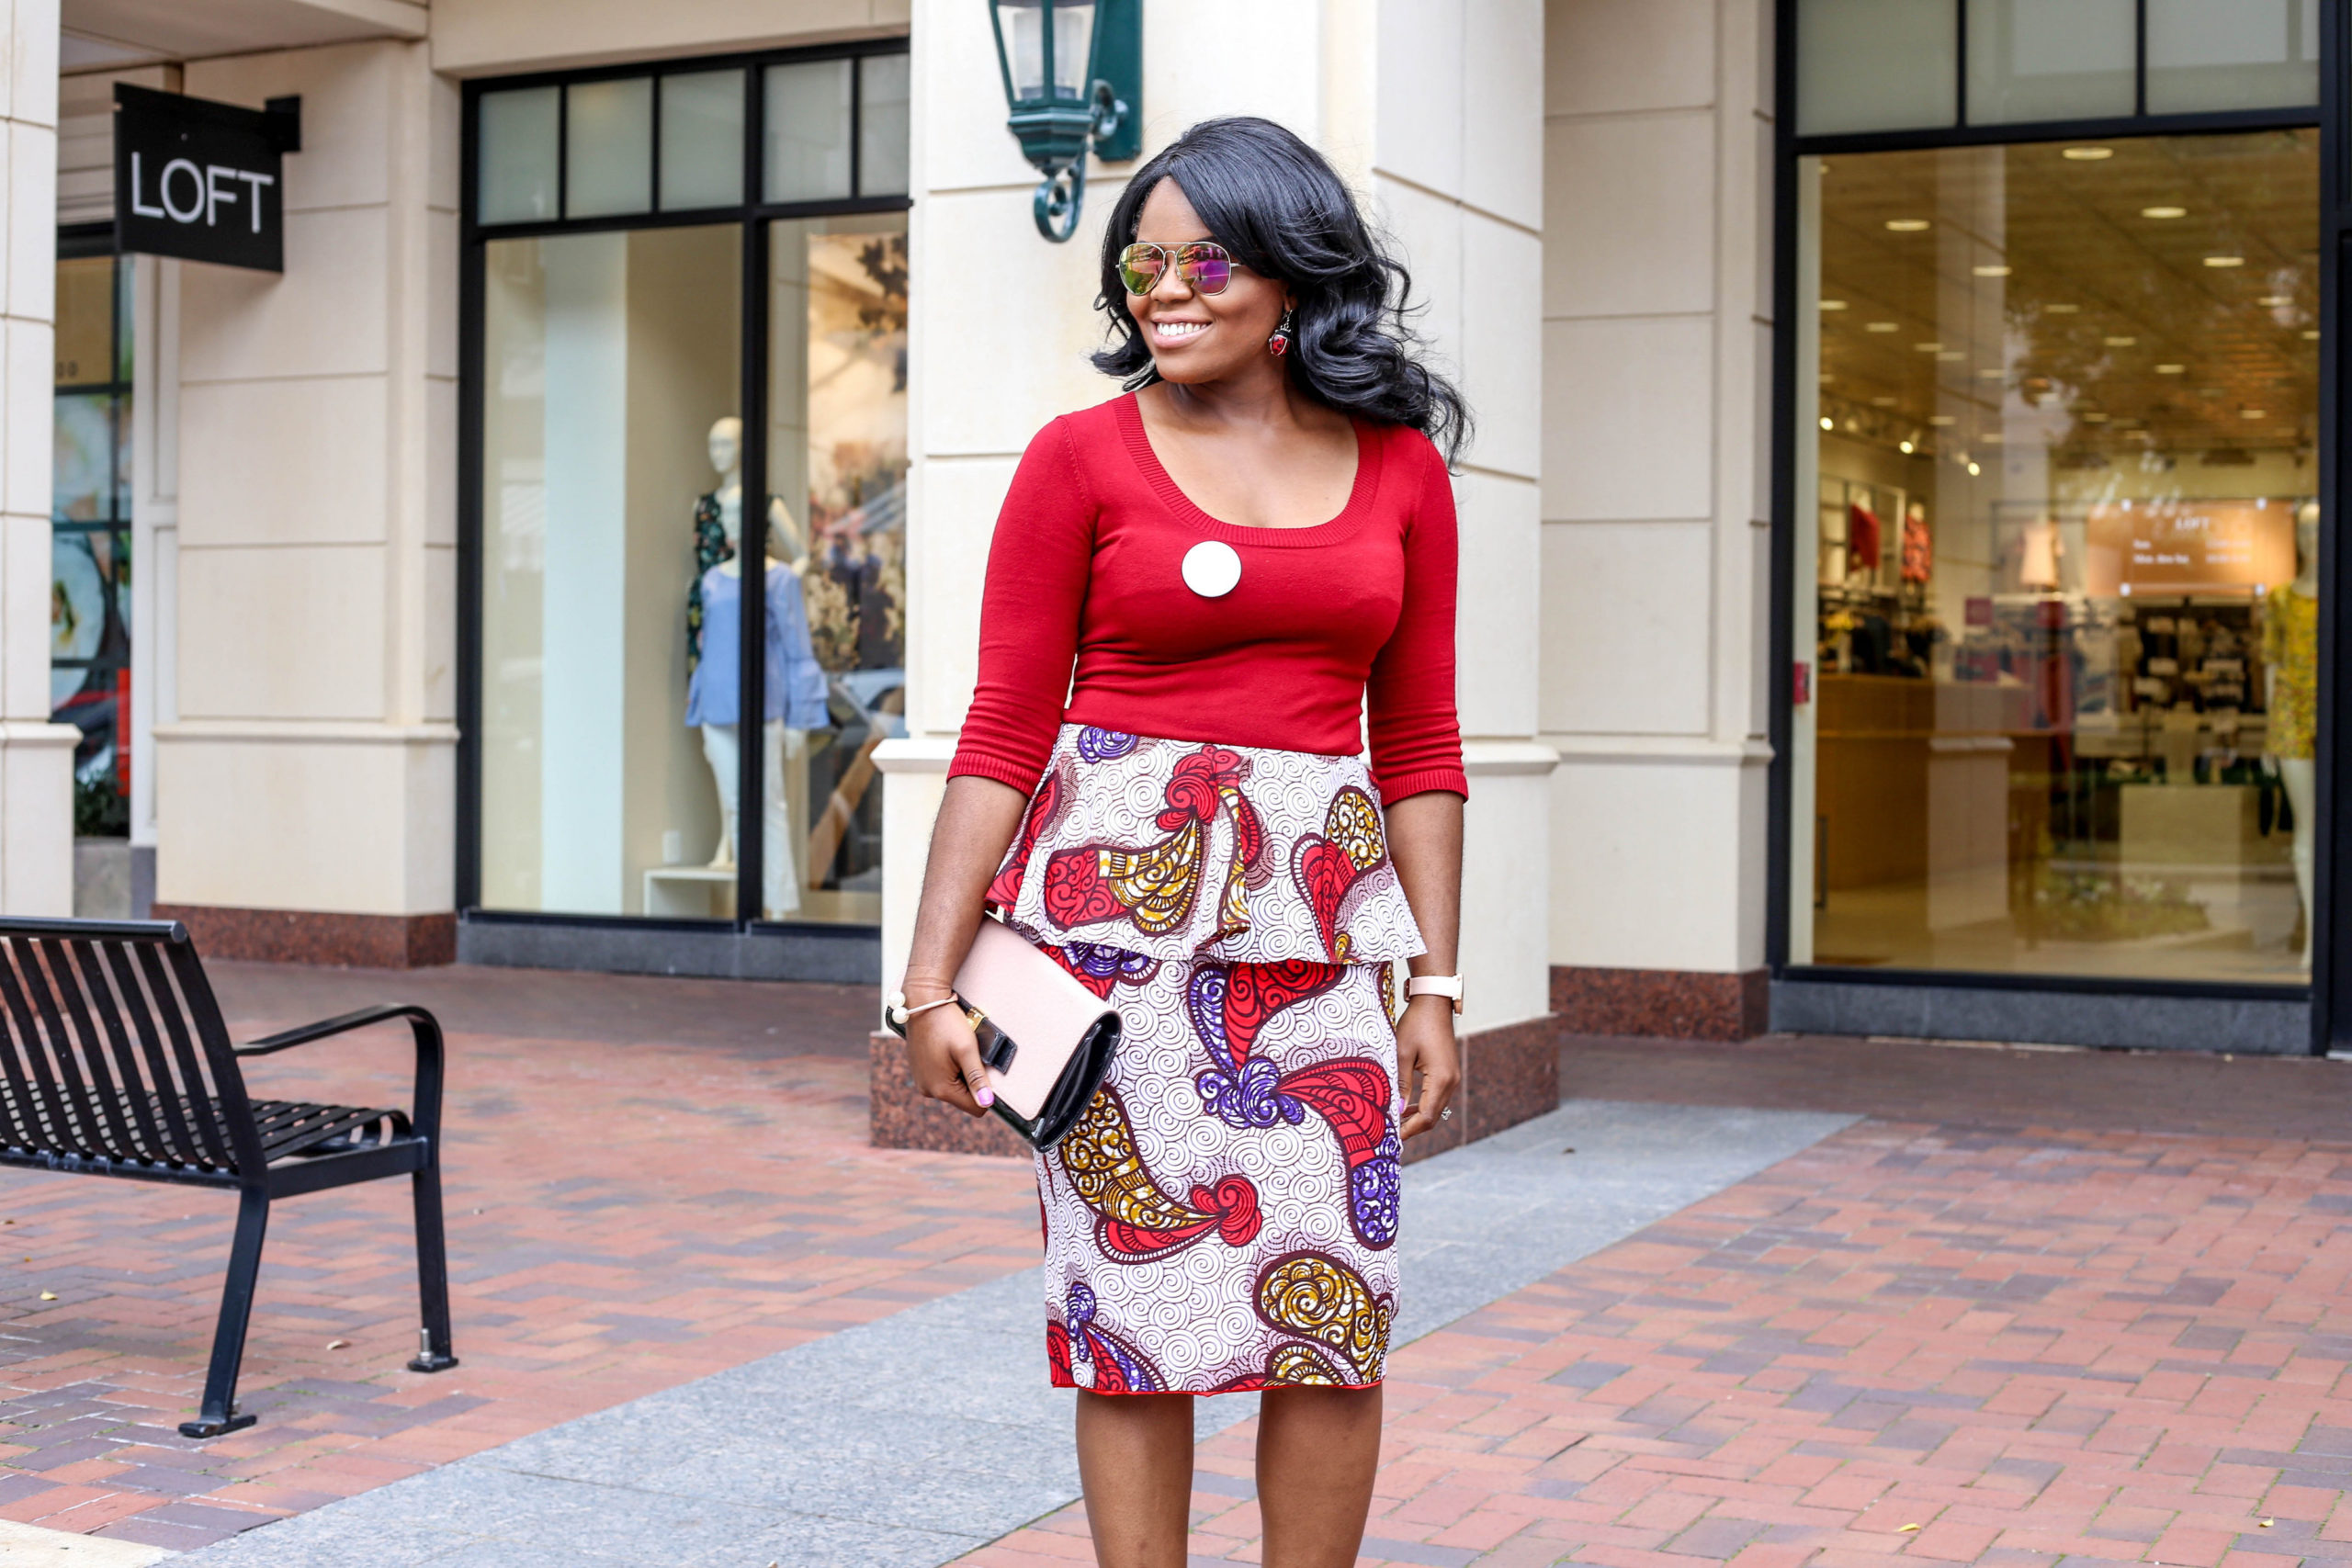 Peplum Skirts + Floral Prints for Spring Red Blouse Top Red White Hibiscus Peplum Floral Pencil Skirt Nude So Kate Christian Louboutin Pumps Blush Black Anne Klein Handbag Bosses in Heels Logo Pin Ladybug Earrings Charming Charlie Bracelet Barbas and Zacari Watch